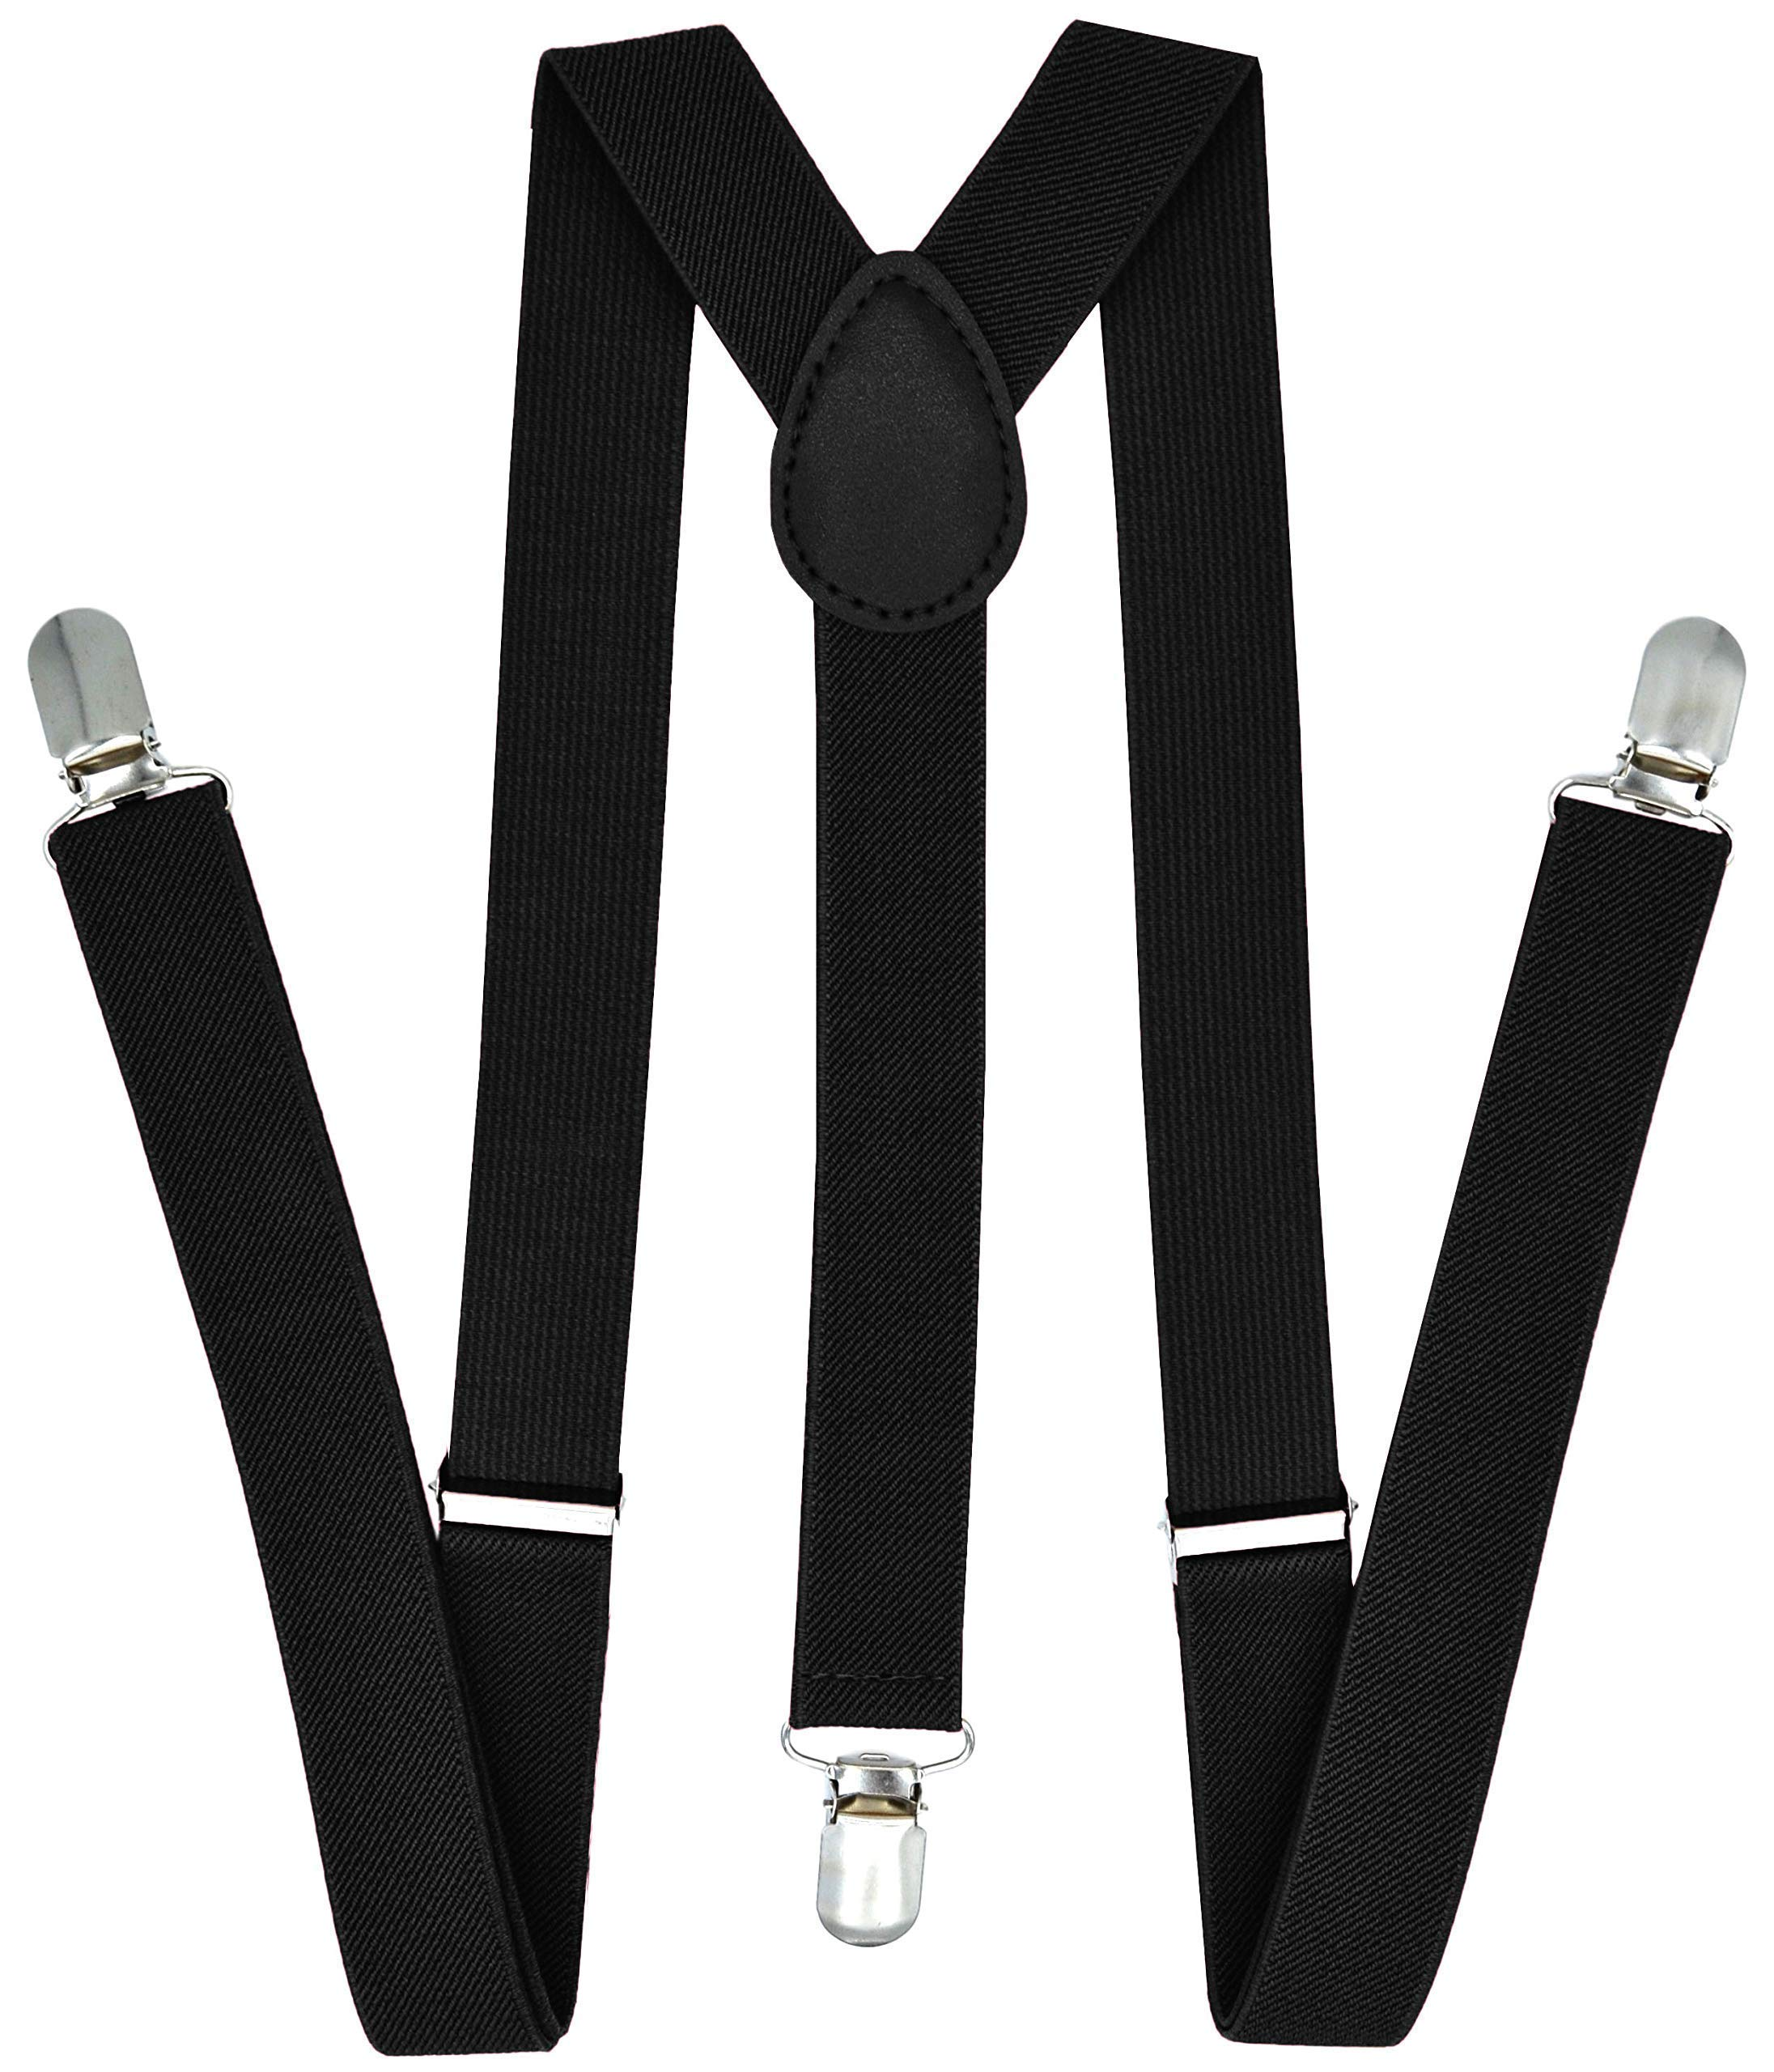 Trilece Suspenders Men Adjustable Suspender